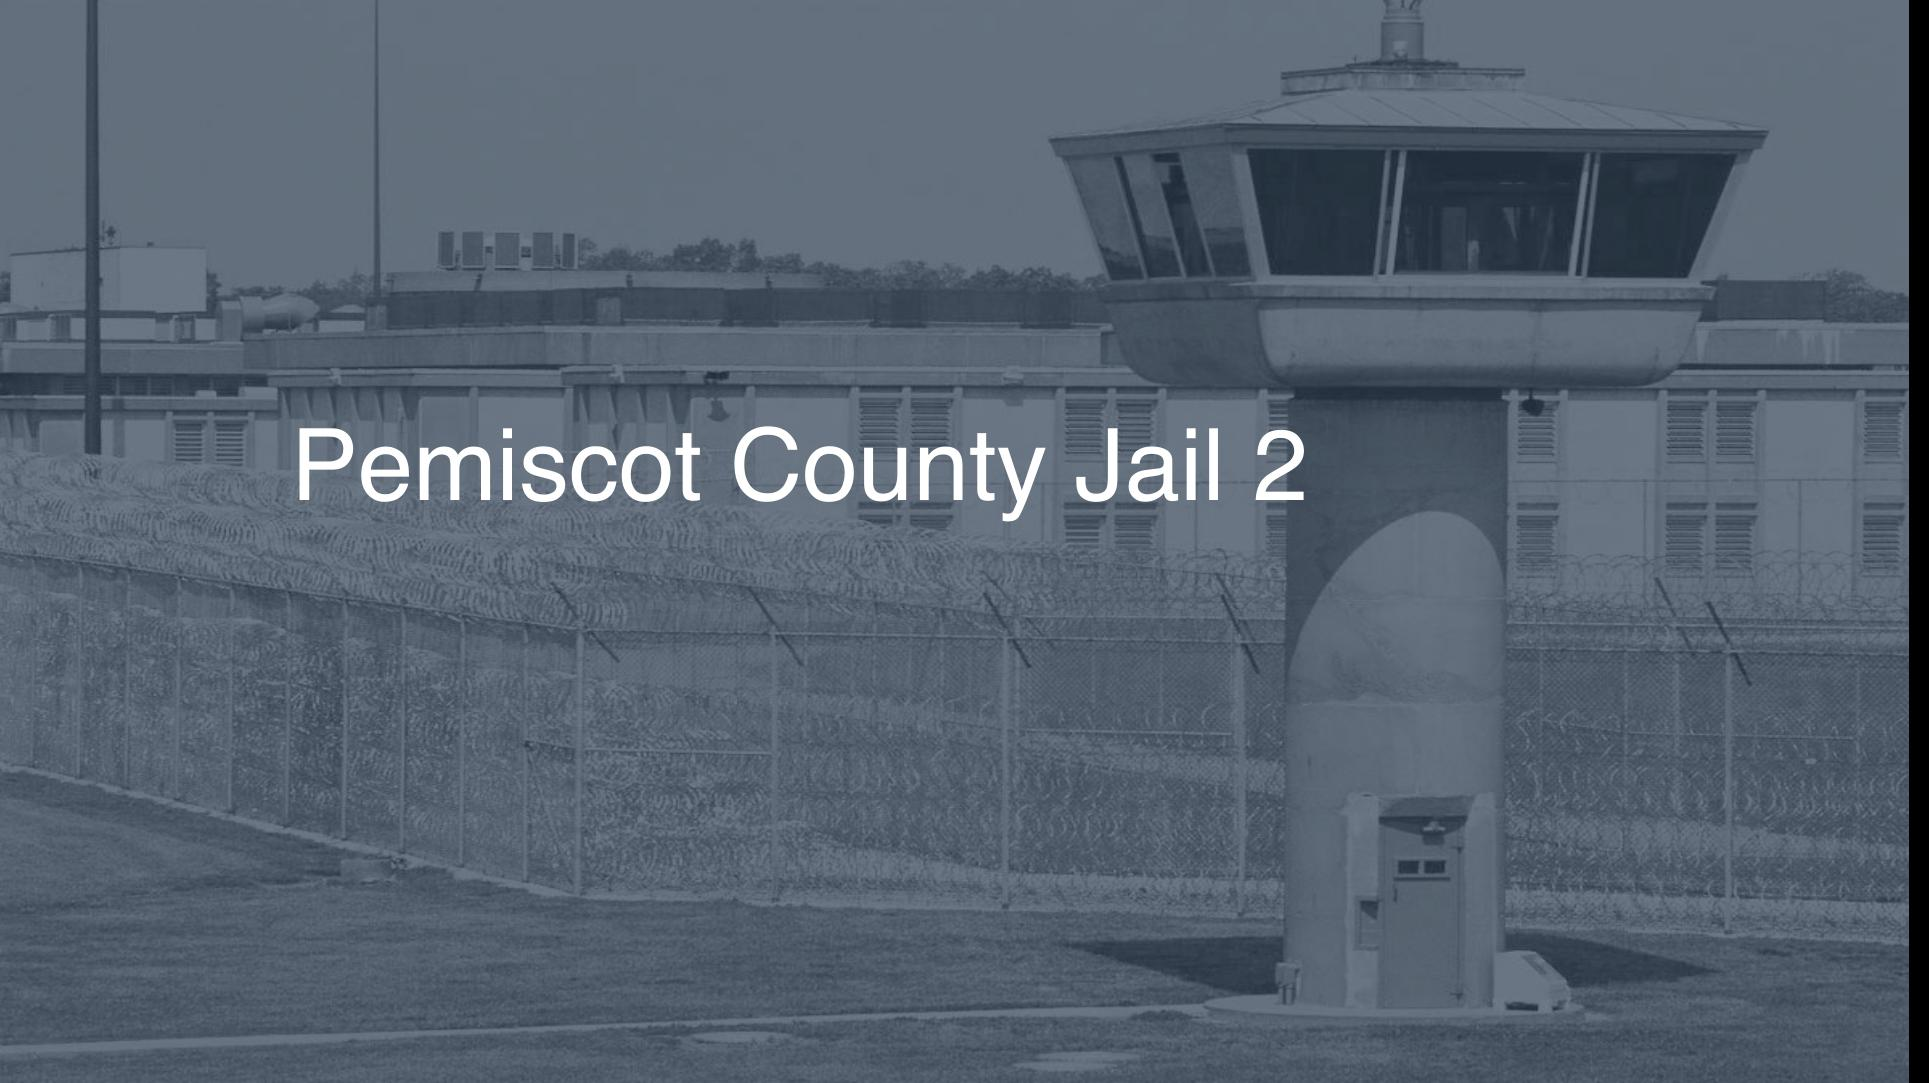 Pemiscot County Jail | Pigeonly - Inmate Search, Locate